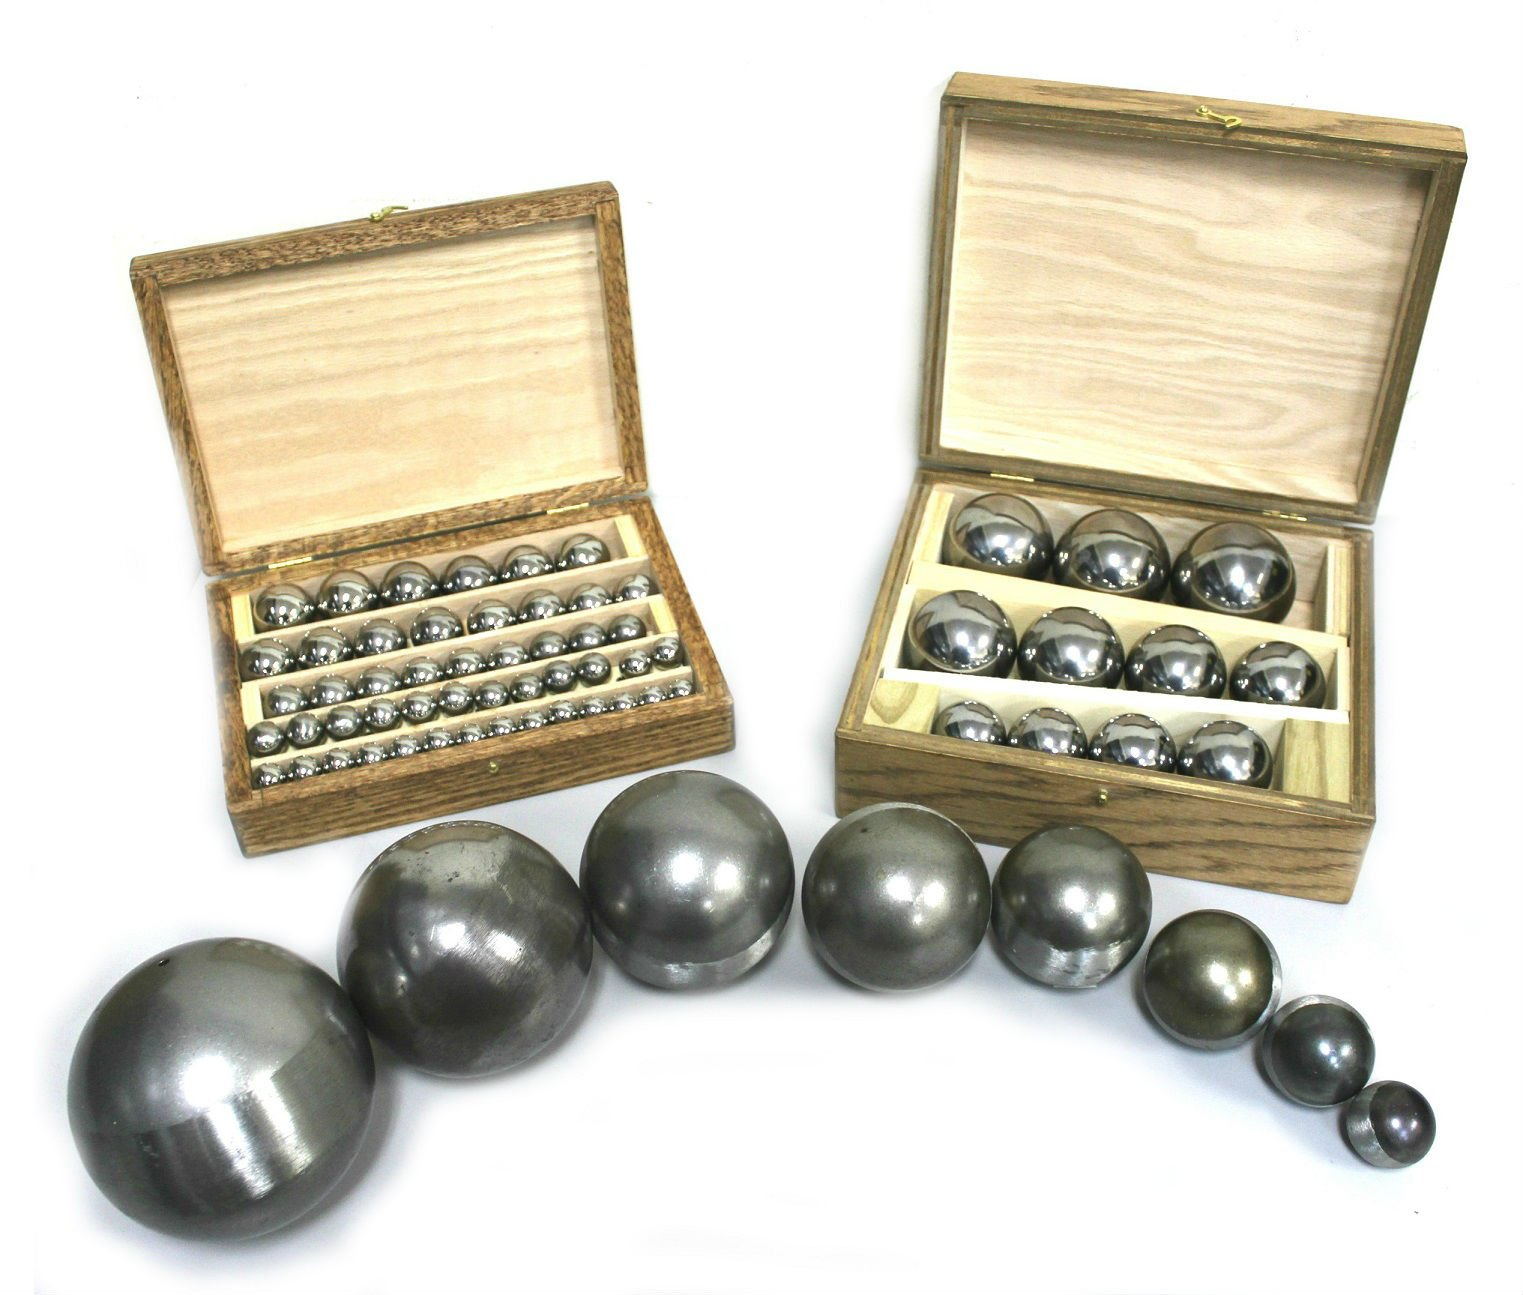 MDRS Ball Set HB